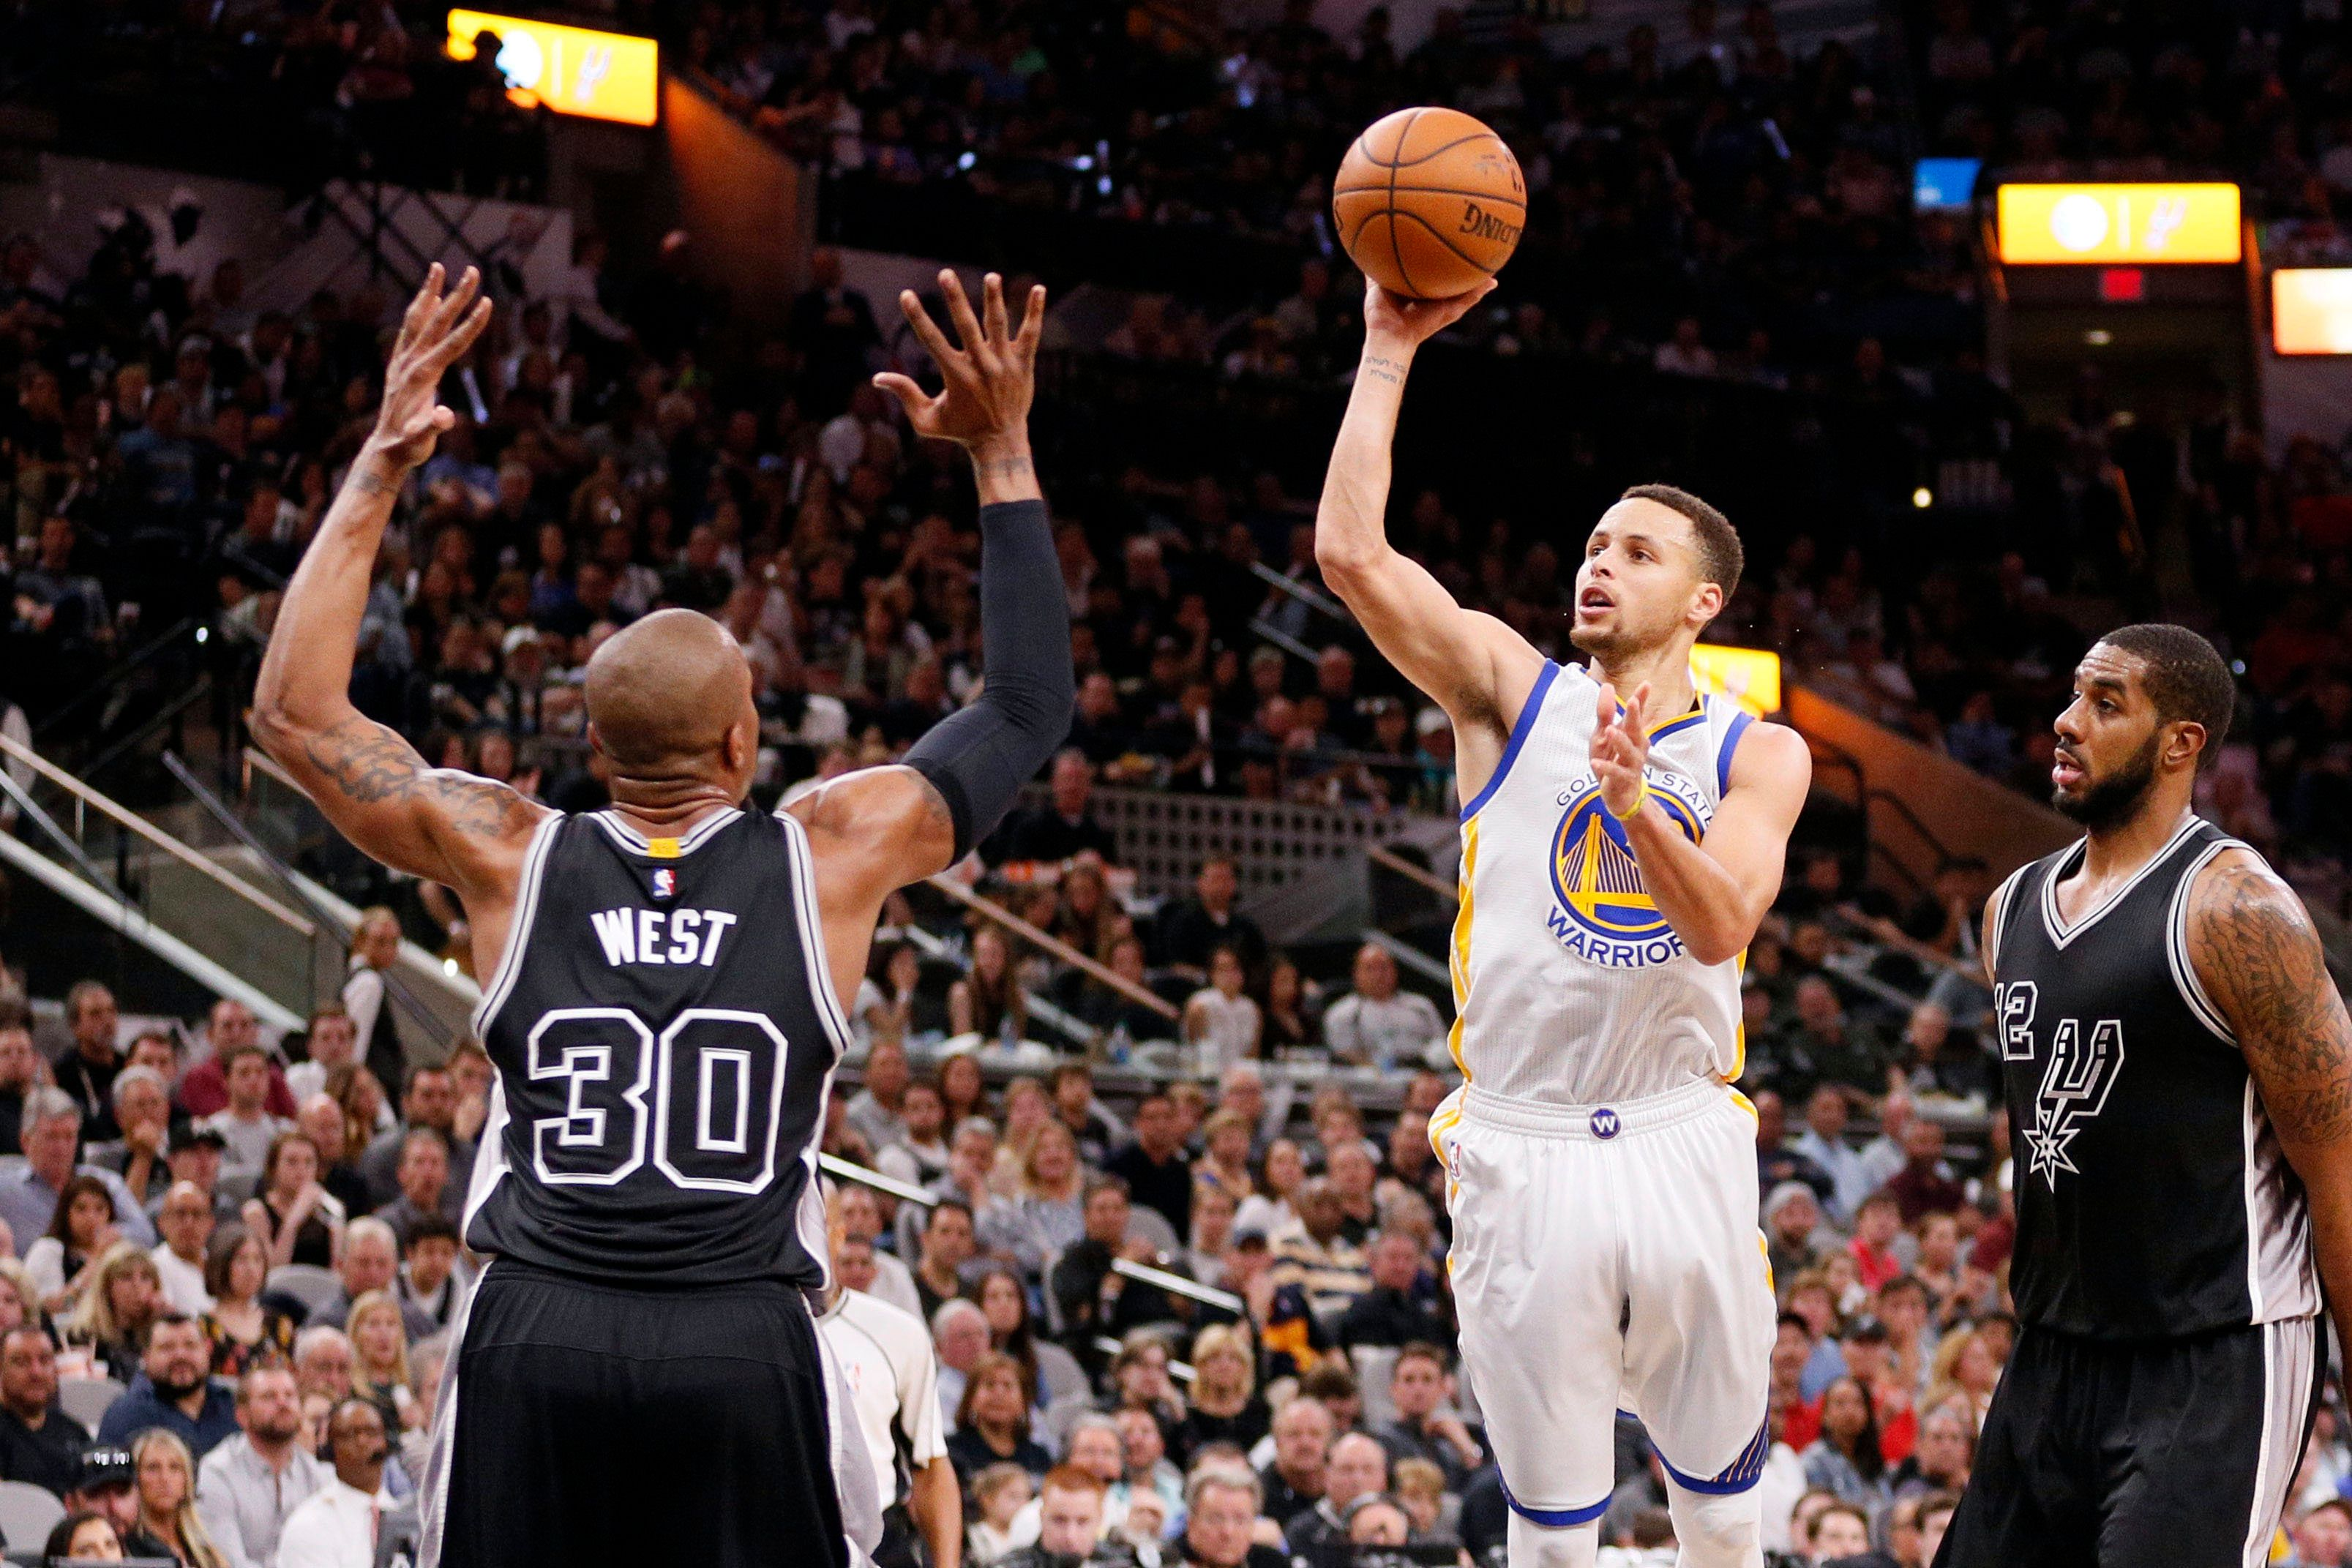 Apr 10, 2016; San Antonio, TX, USA; Golden State Warriors point guard Stephen Curry (30) shoots the ball over San Antonio Spurs power forward David West (30) during the second half at AT&T Center. Mandatory Credit: Soobum Im-USA TODAY Sports